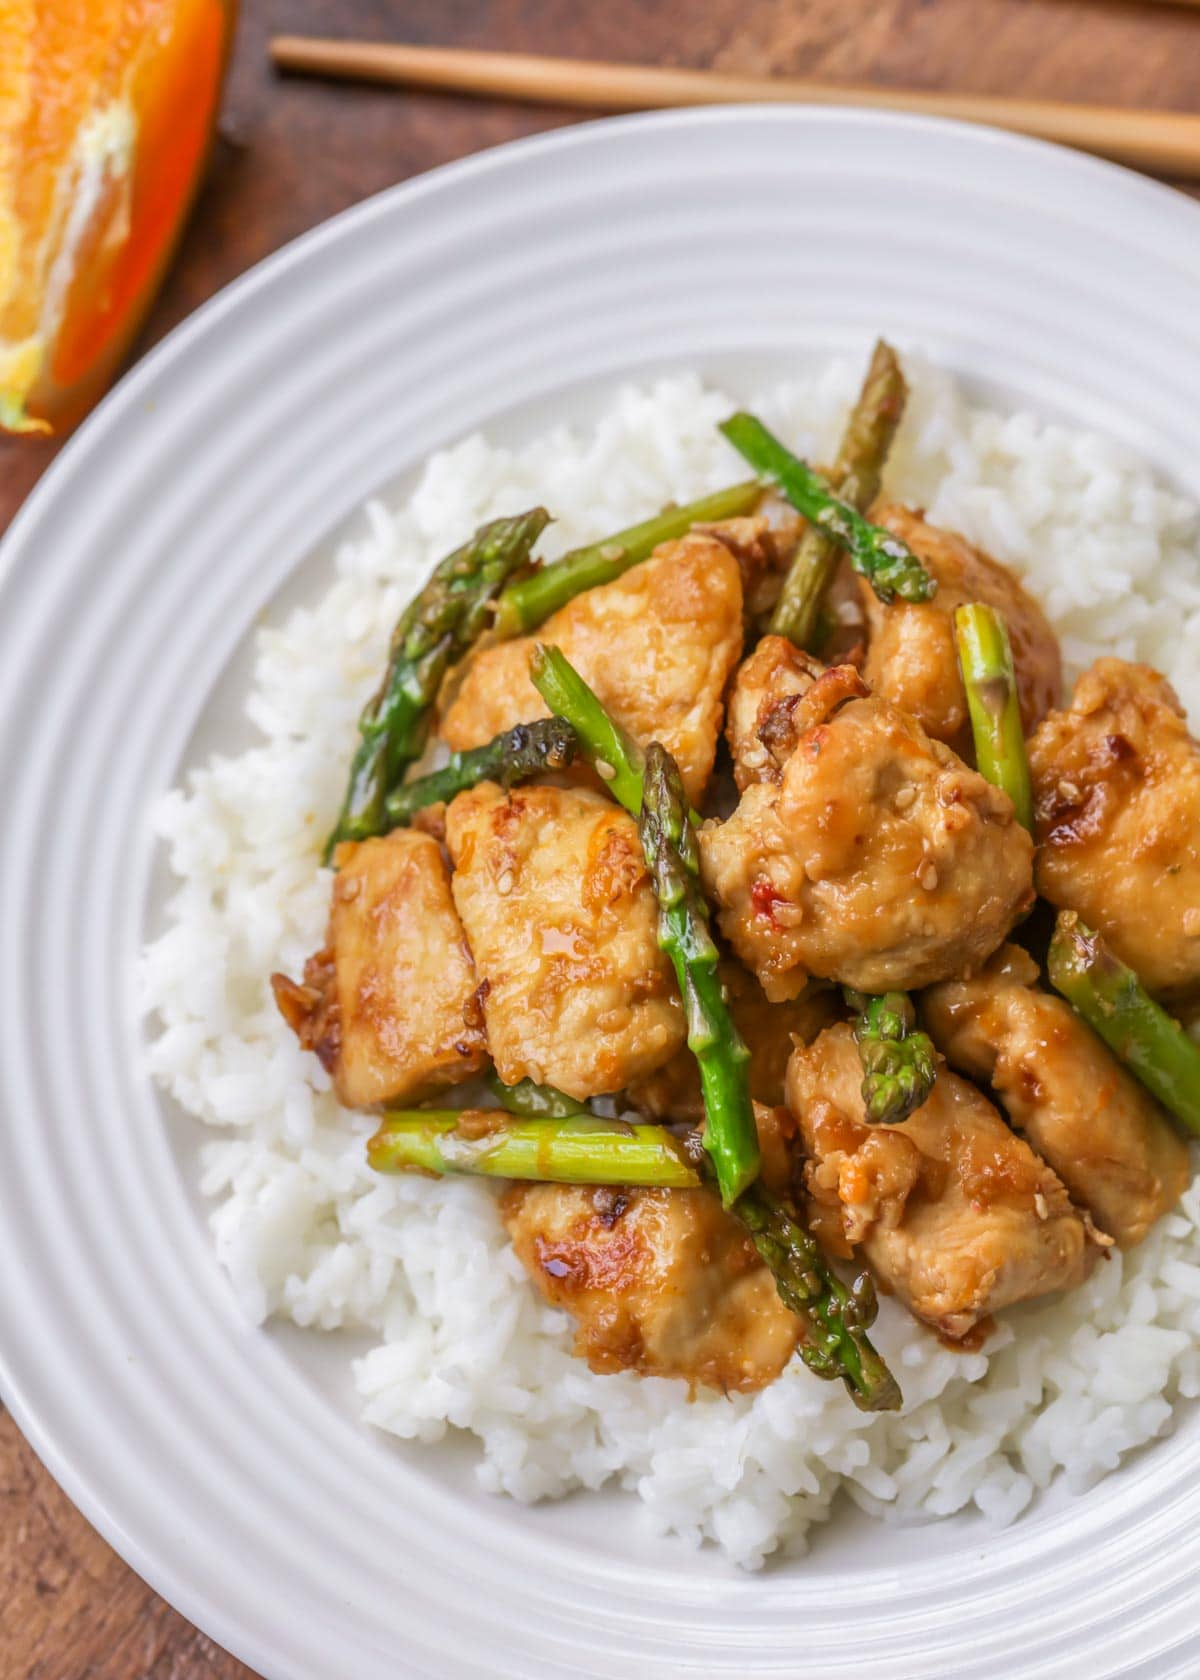 Orange chicken with asparagus served over white rice